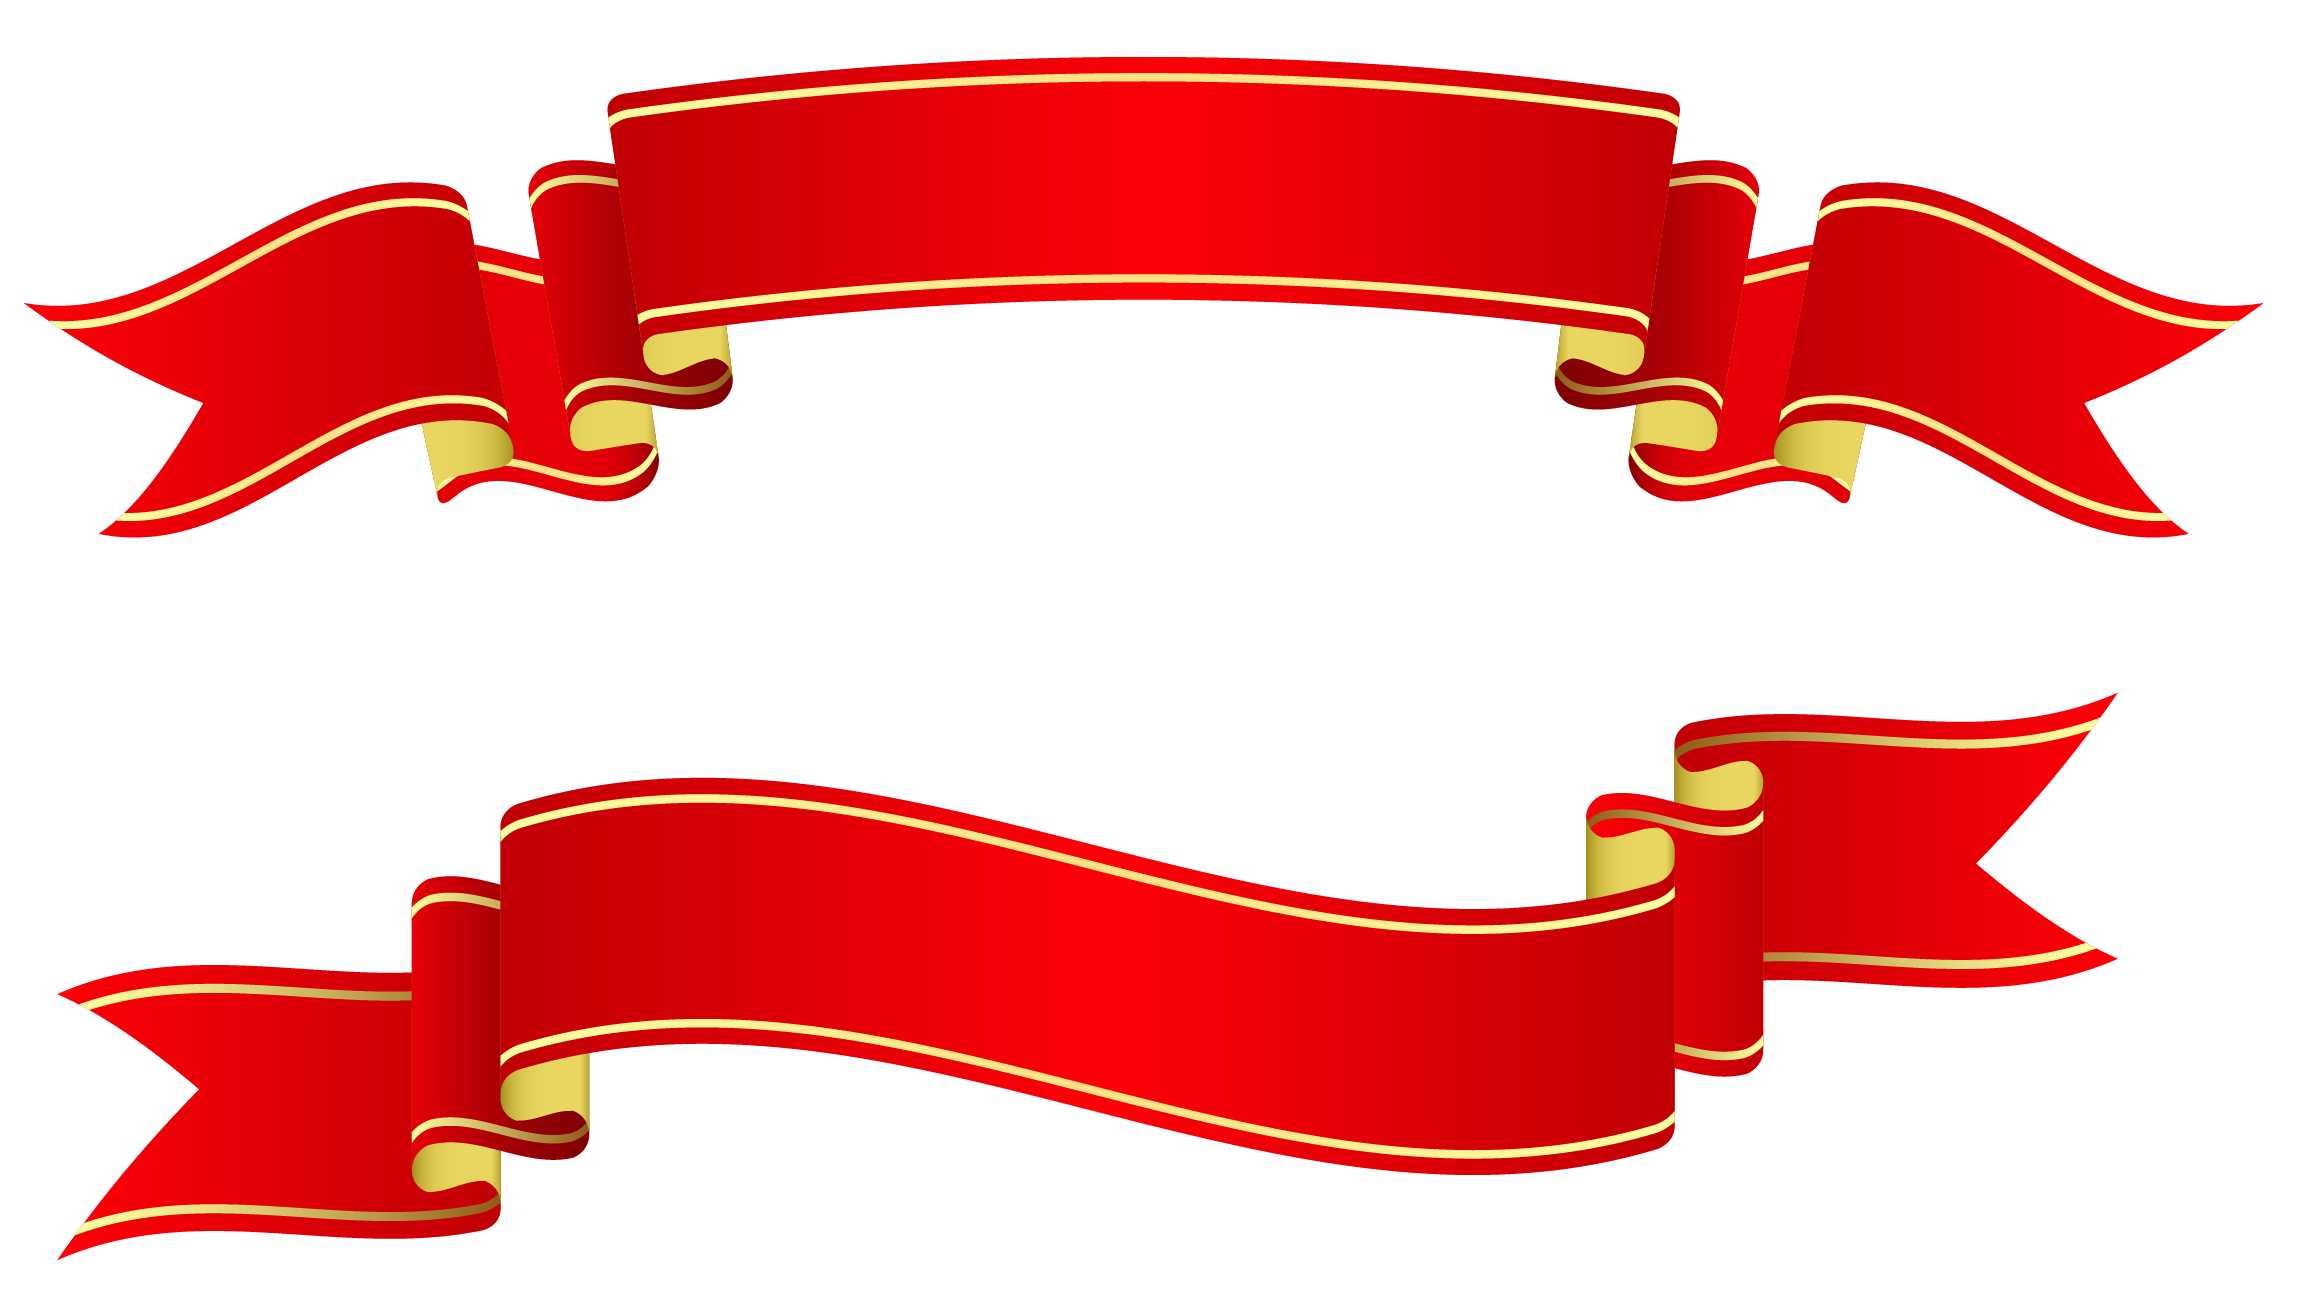 Red banners clipart picture. Ribbon banner png image free stock